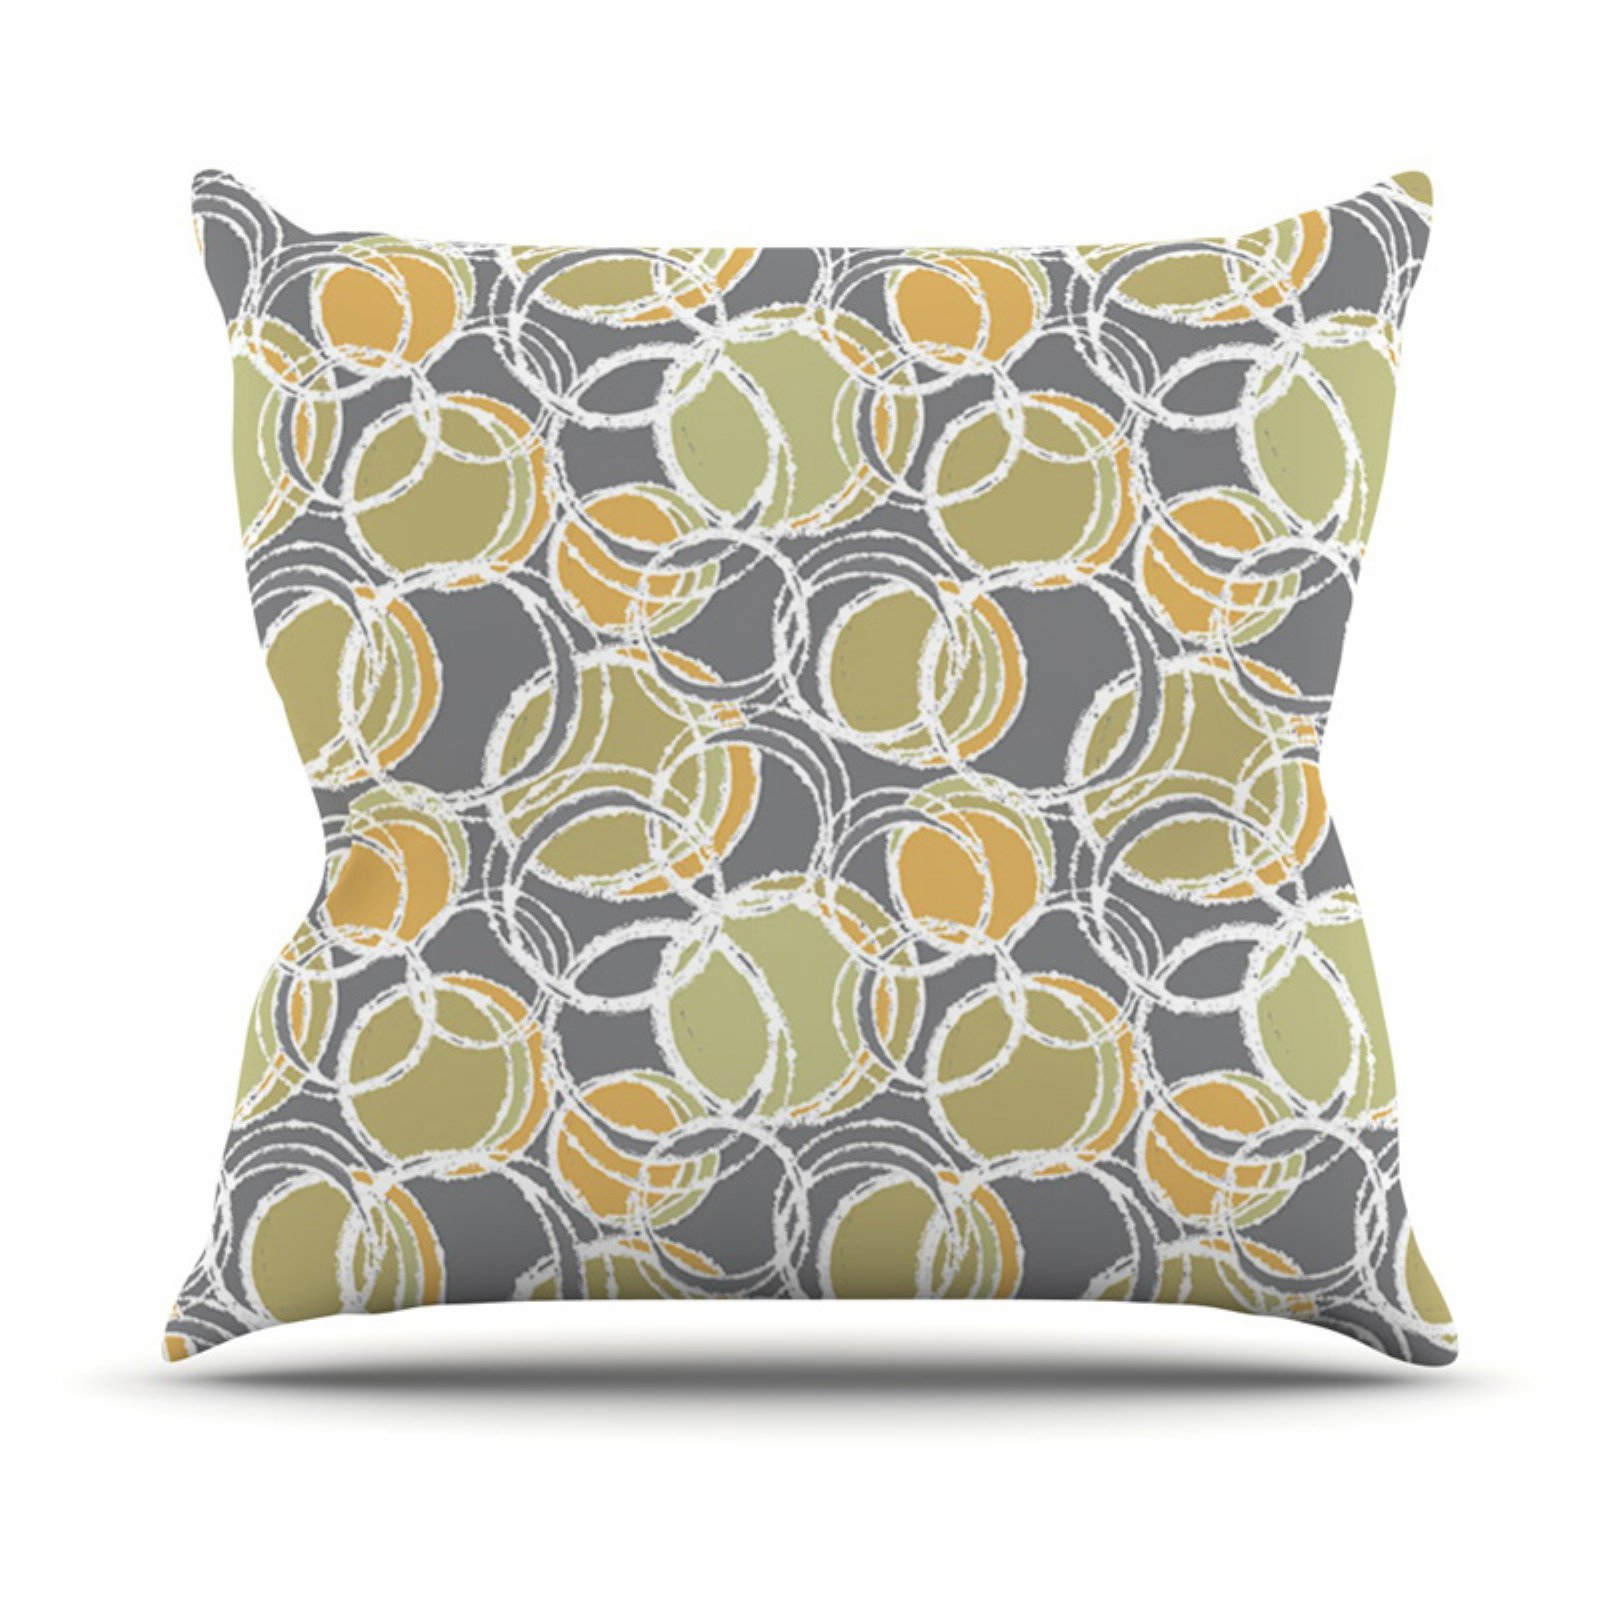 Kess InHouse Julia Grifol Simple Circles Outdoor Throw Pillow